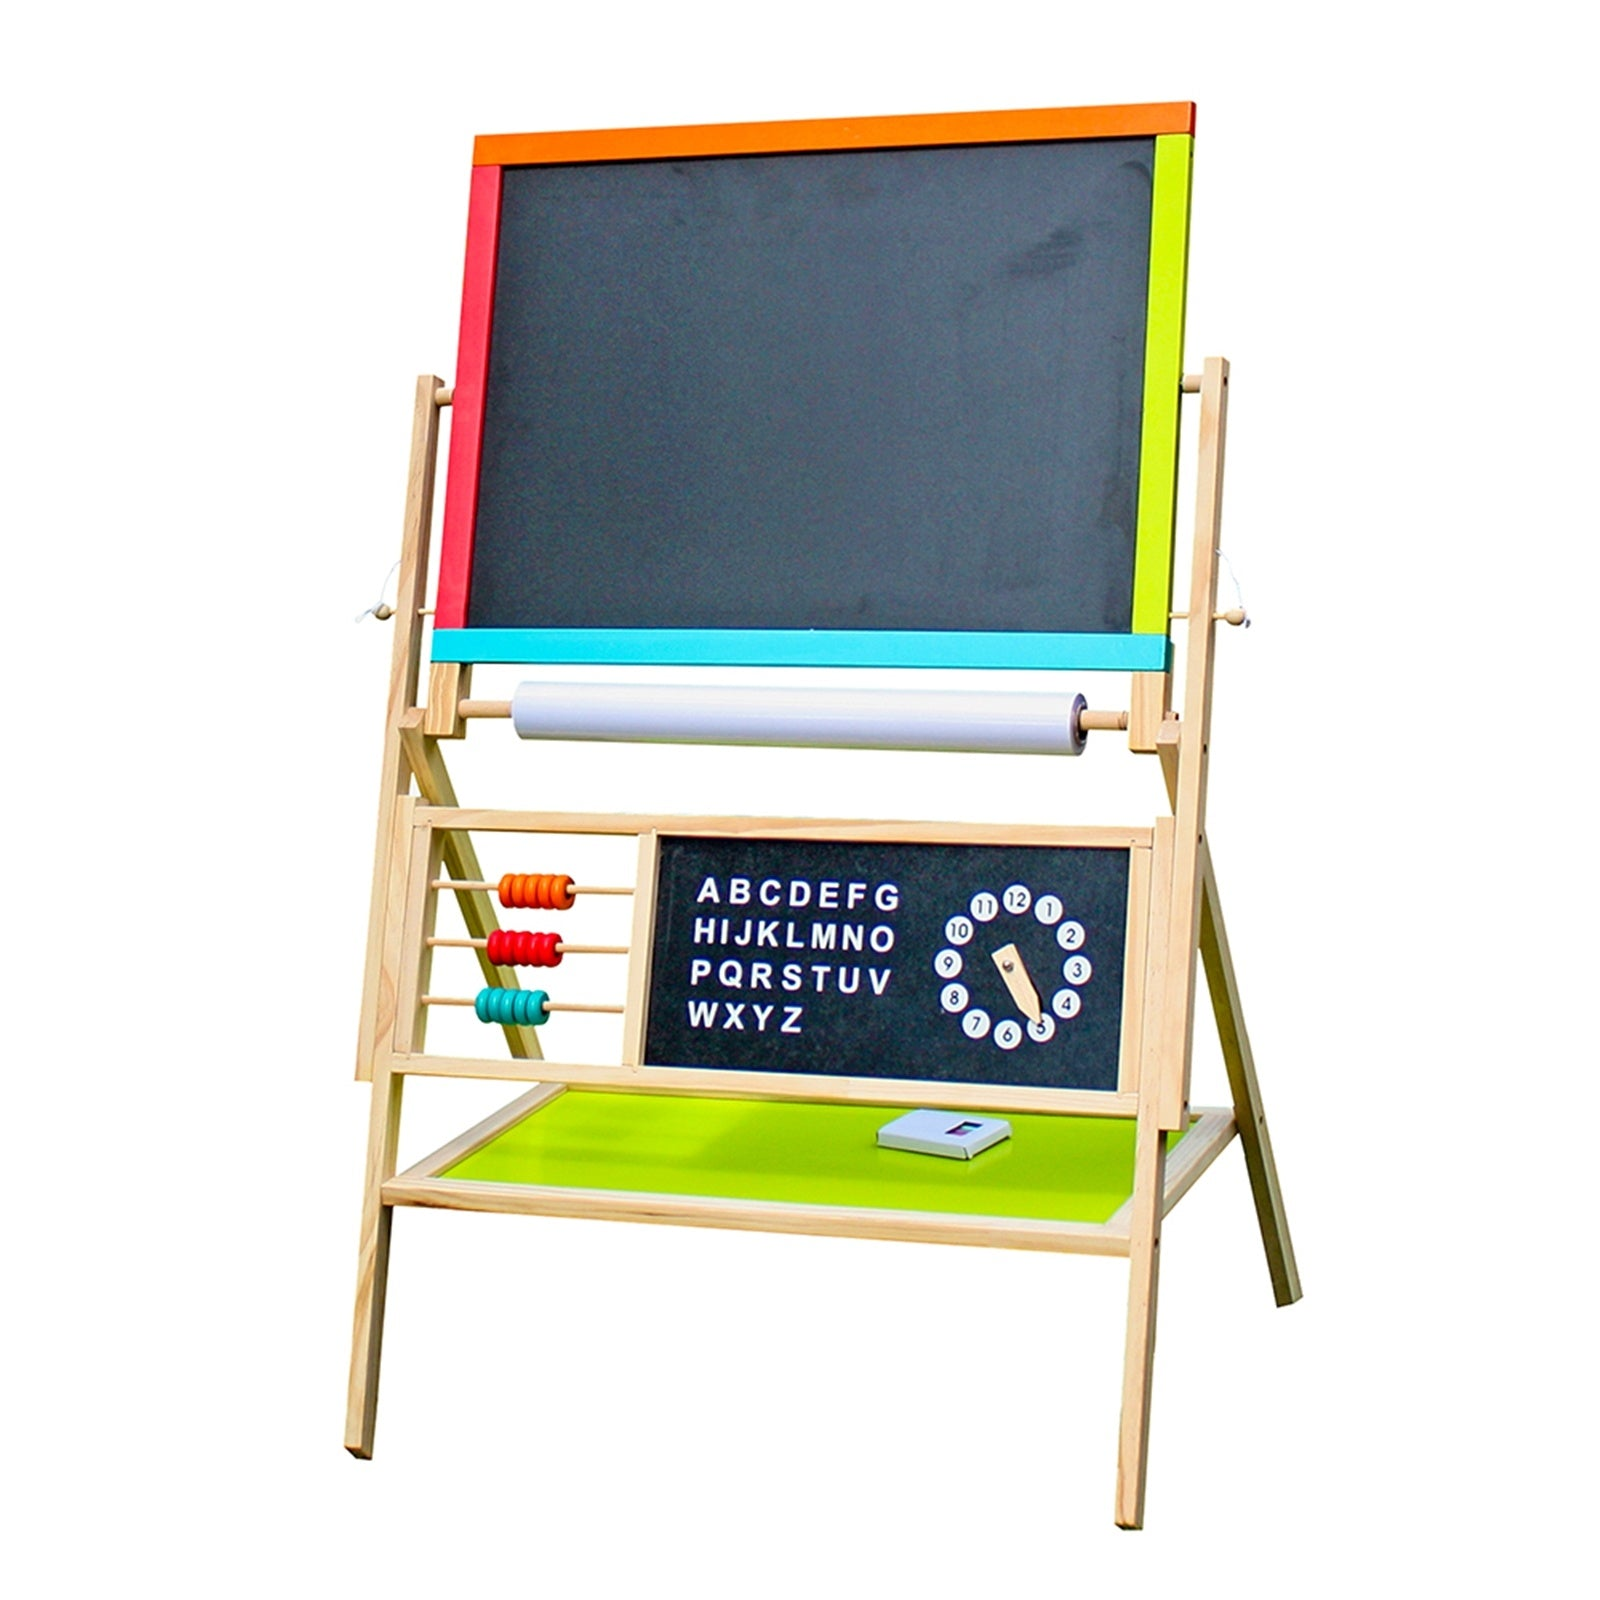 All-in-One Multifunction Wooden Kid's Art Education Easel with Accessories YF